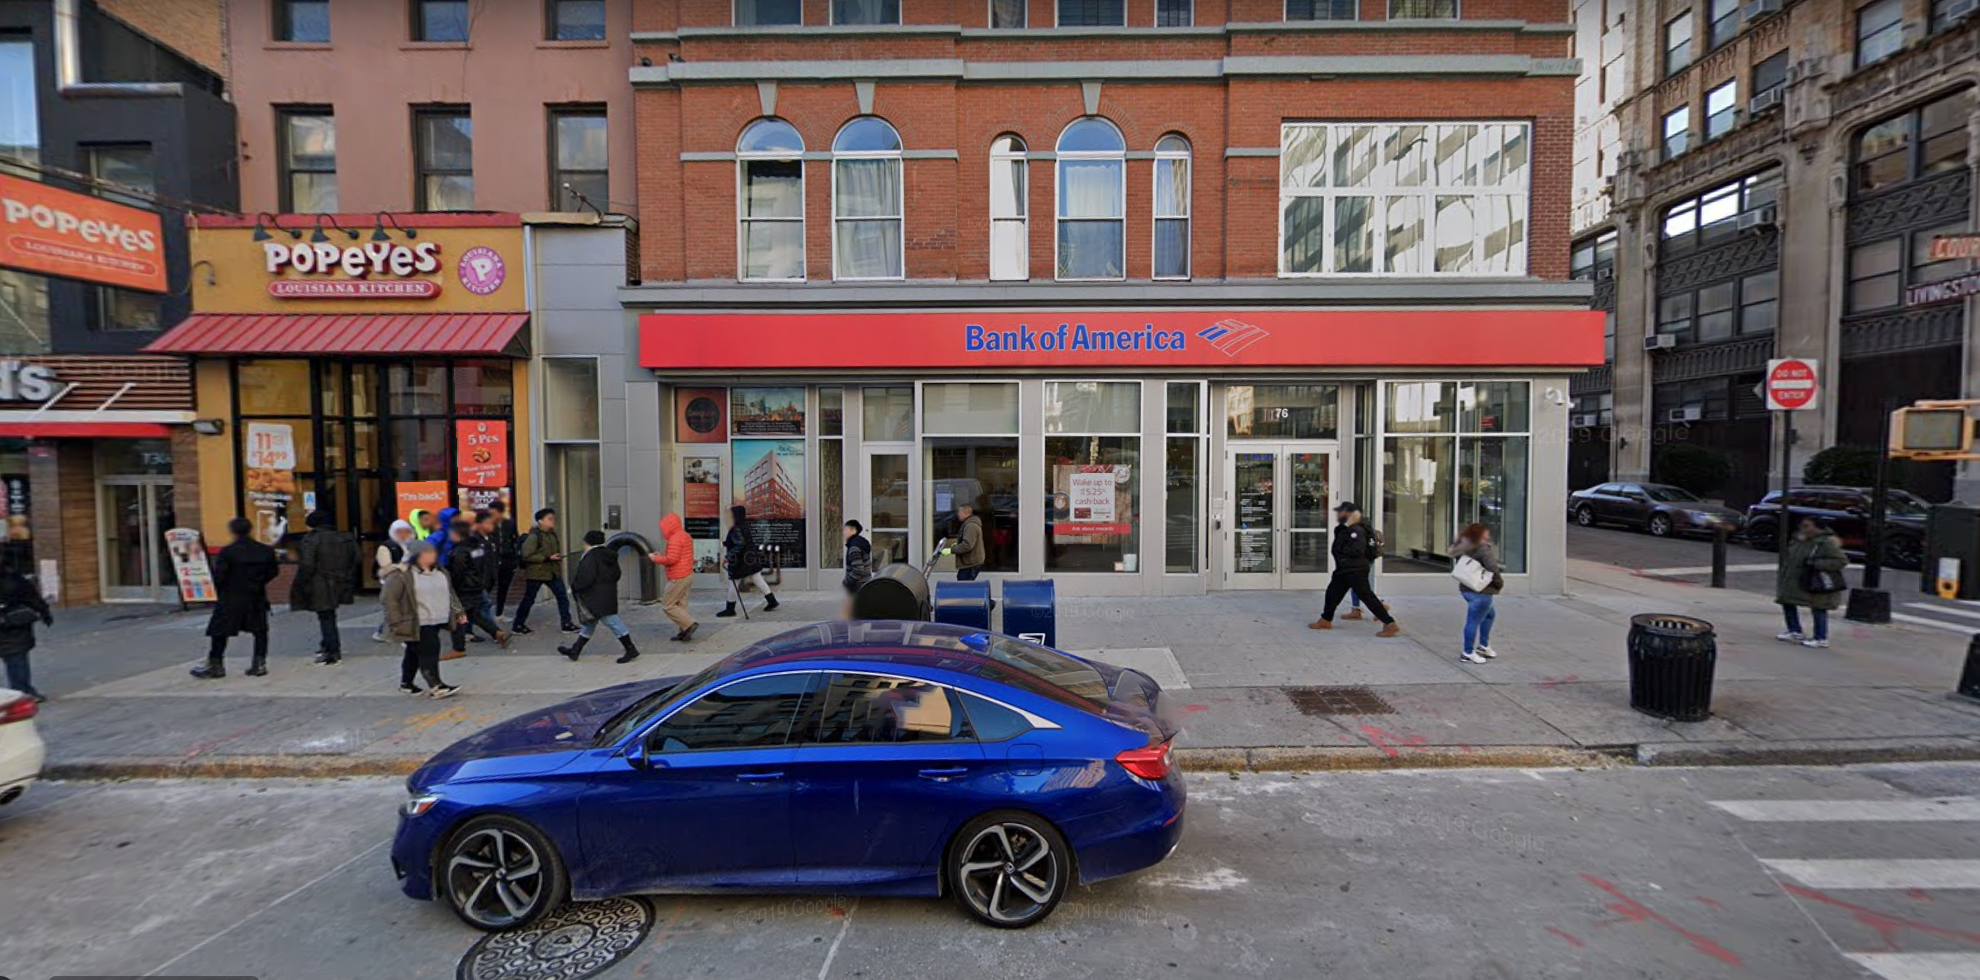 Bank of America financial center with walk-up ATM | 76 Court St STE 1, Brooklyn, NY 11201